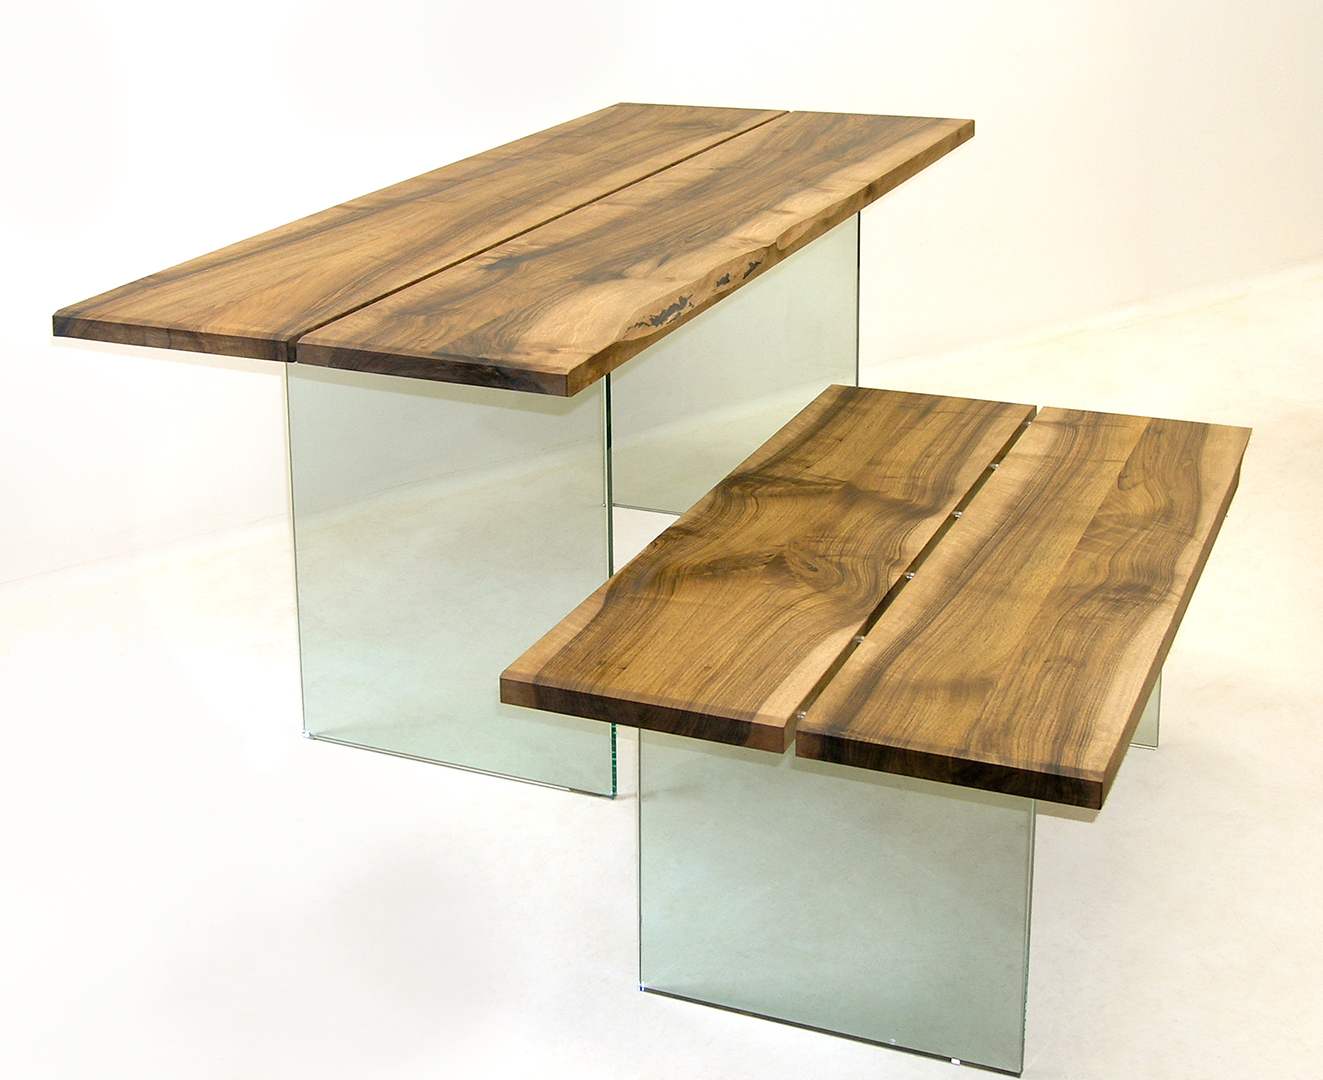 Mapleart custom wood furniture vancouver bclinden for Coffee tables vancouver canada